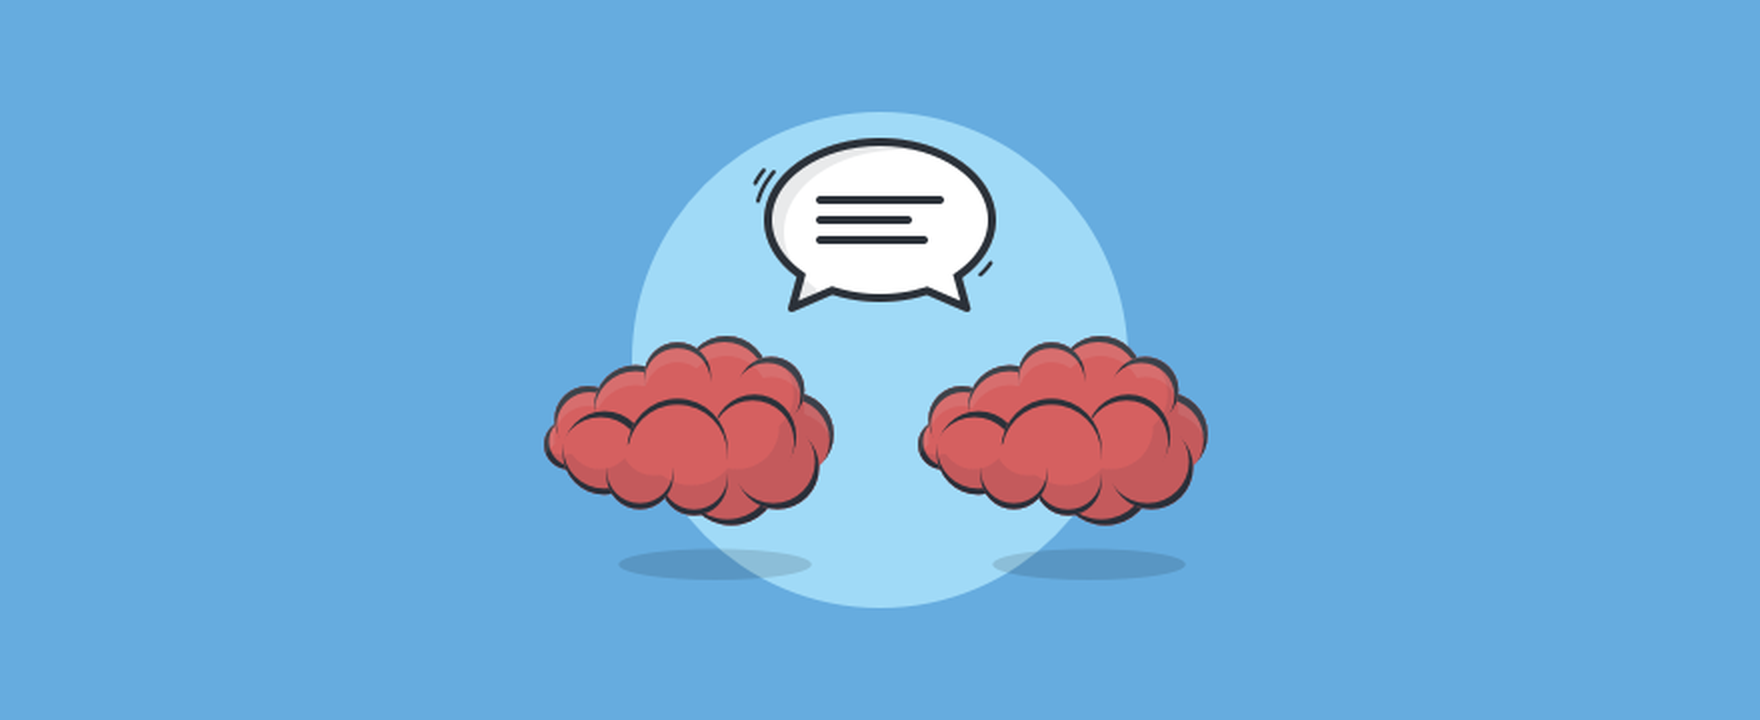 9 Effective Communication Techniques Everyone Should Know About